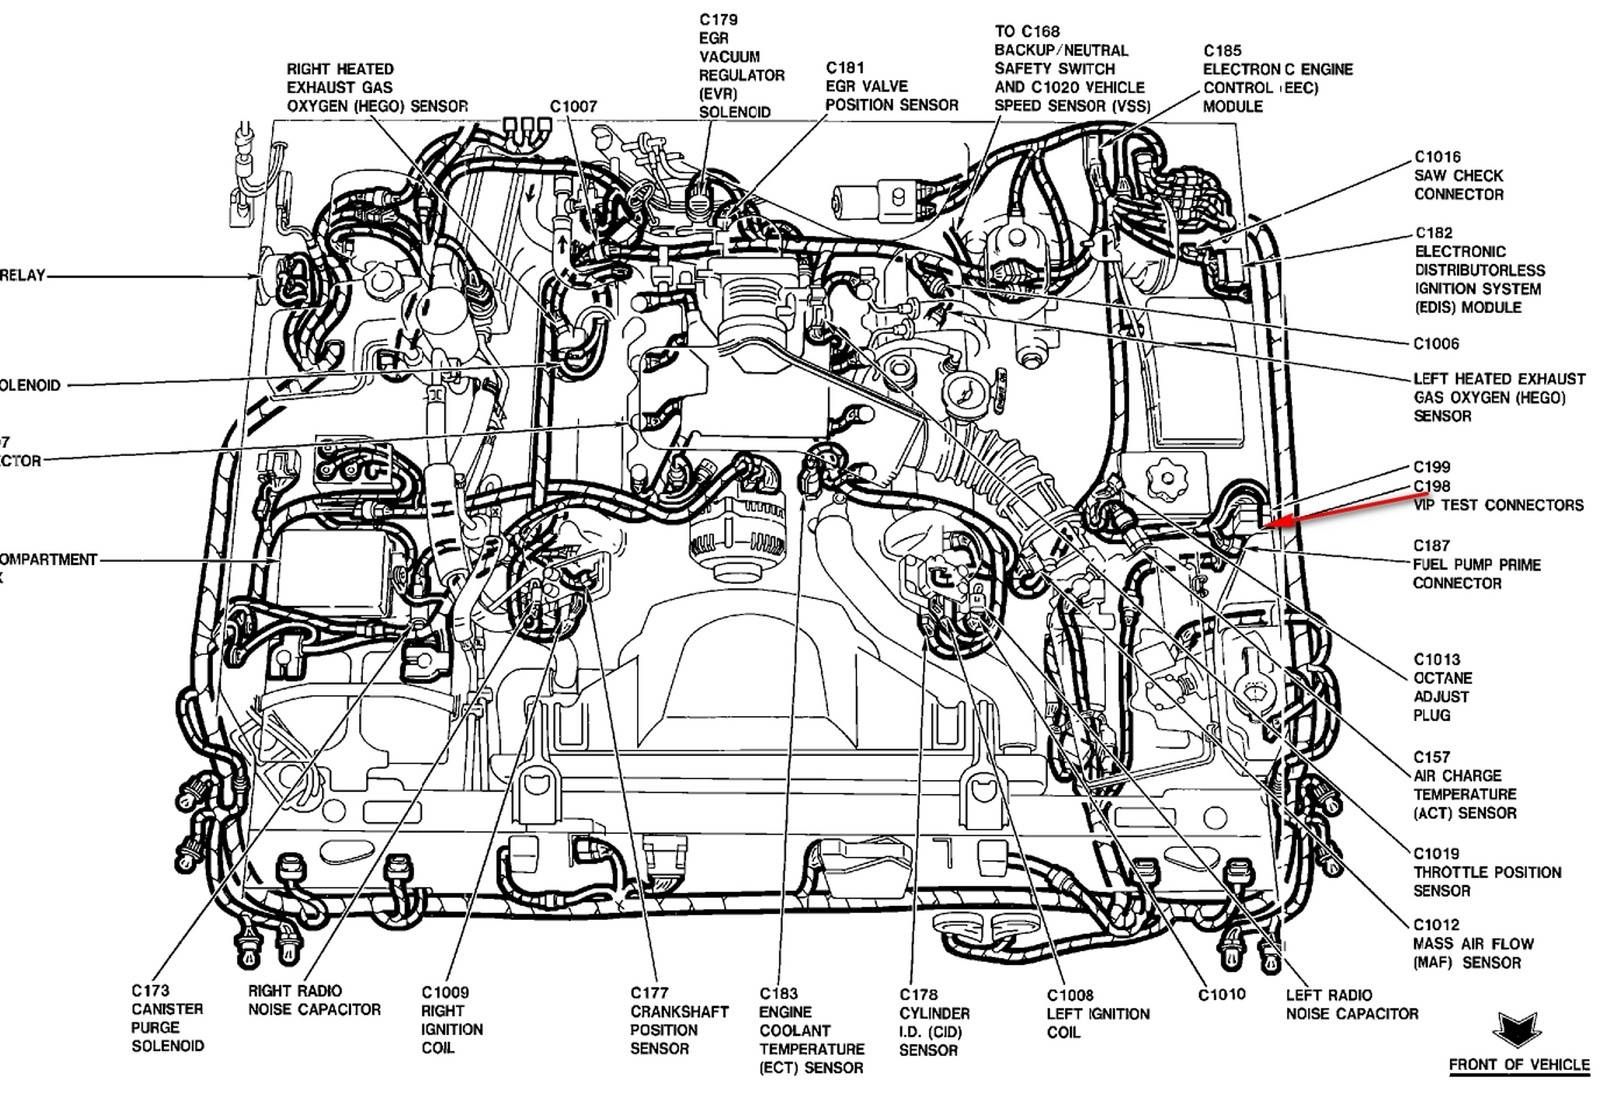 P0128 2009 honda accord also Focus Temp Diagram besides Buick Rendezvous Wiring Diagram likewise Discussion T29372 ds554767 besides P0125 2004 nissan maxima. on bmw engine coolant temperature sensor location